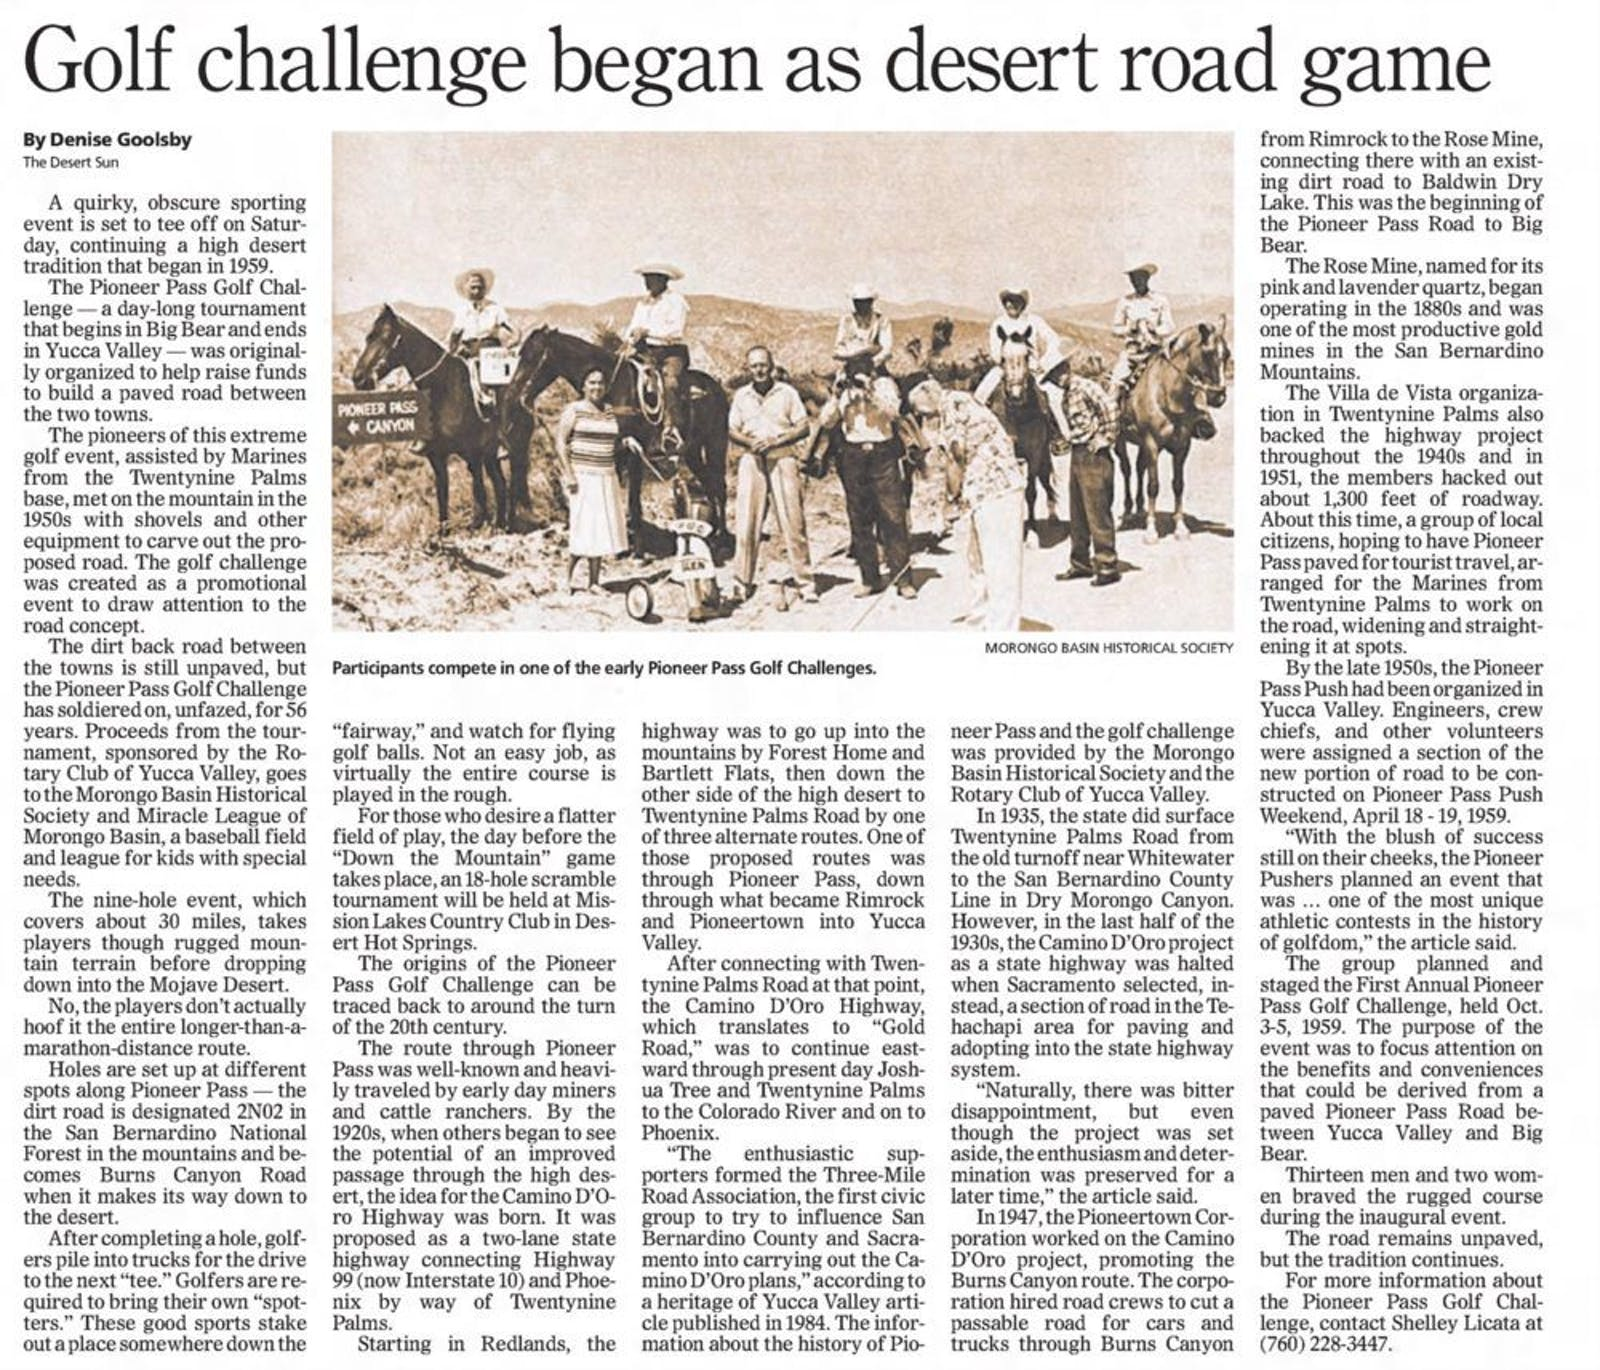 Golf challenge began as desert road game article clipping